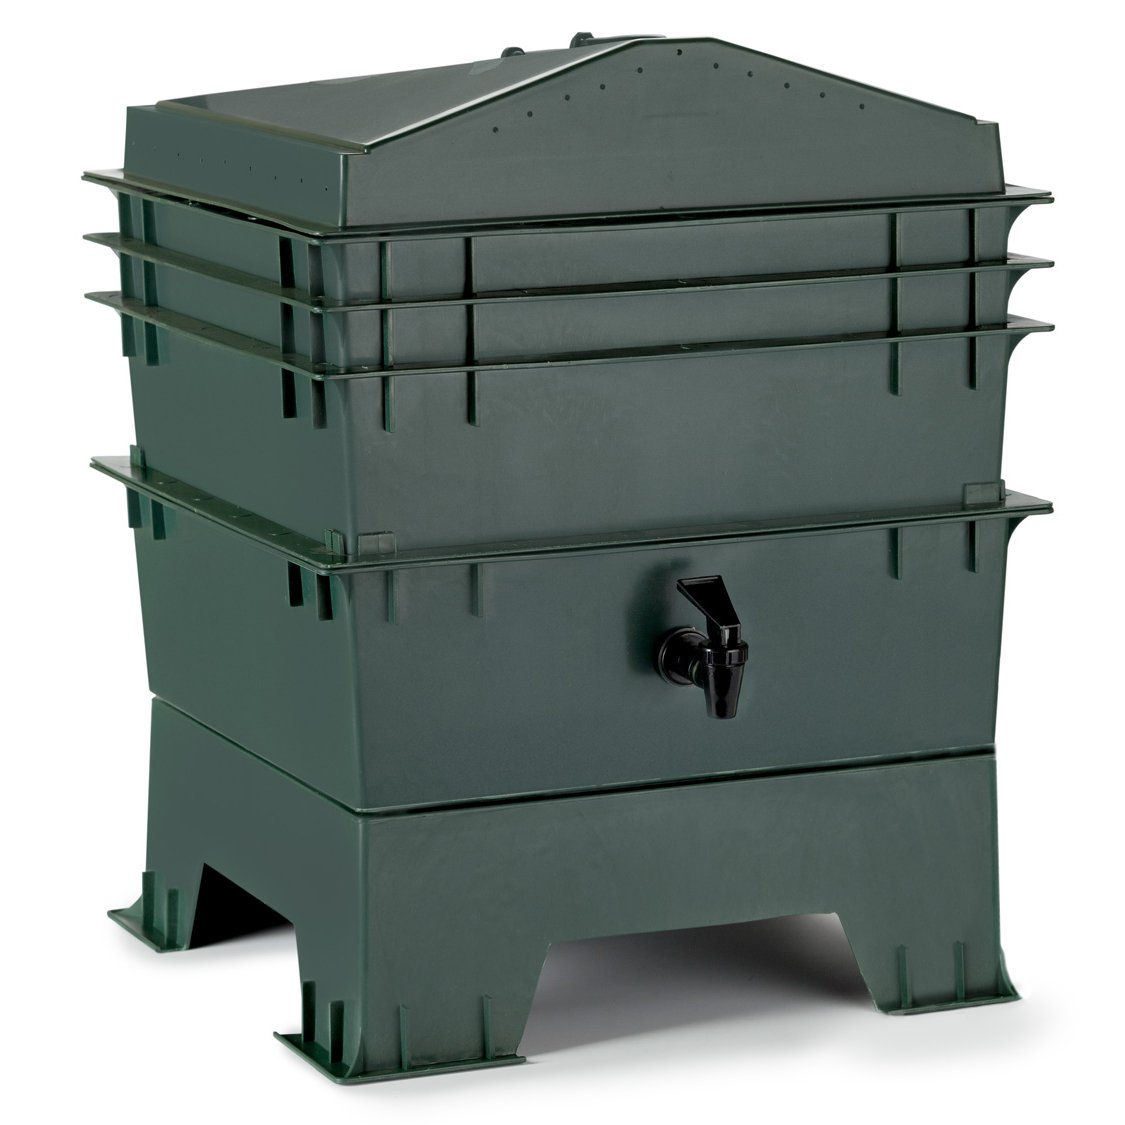 Chef's Star 3-Tray Stackable/Expandable Recycled Plastic Odorless Worm Composter Chef's Star